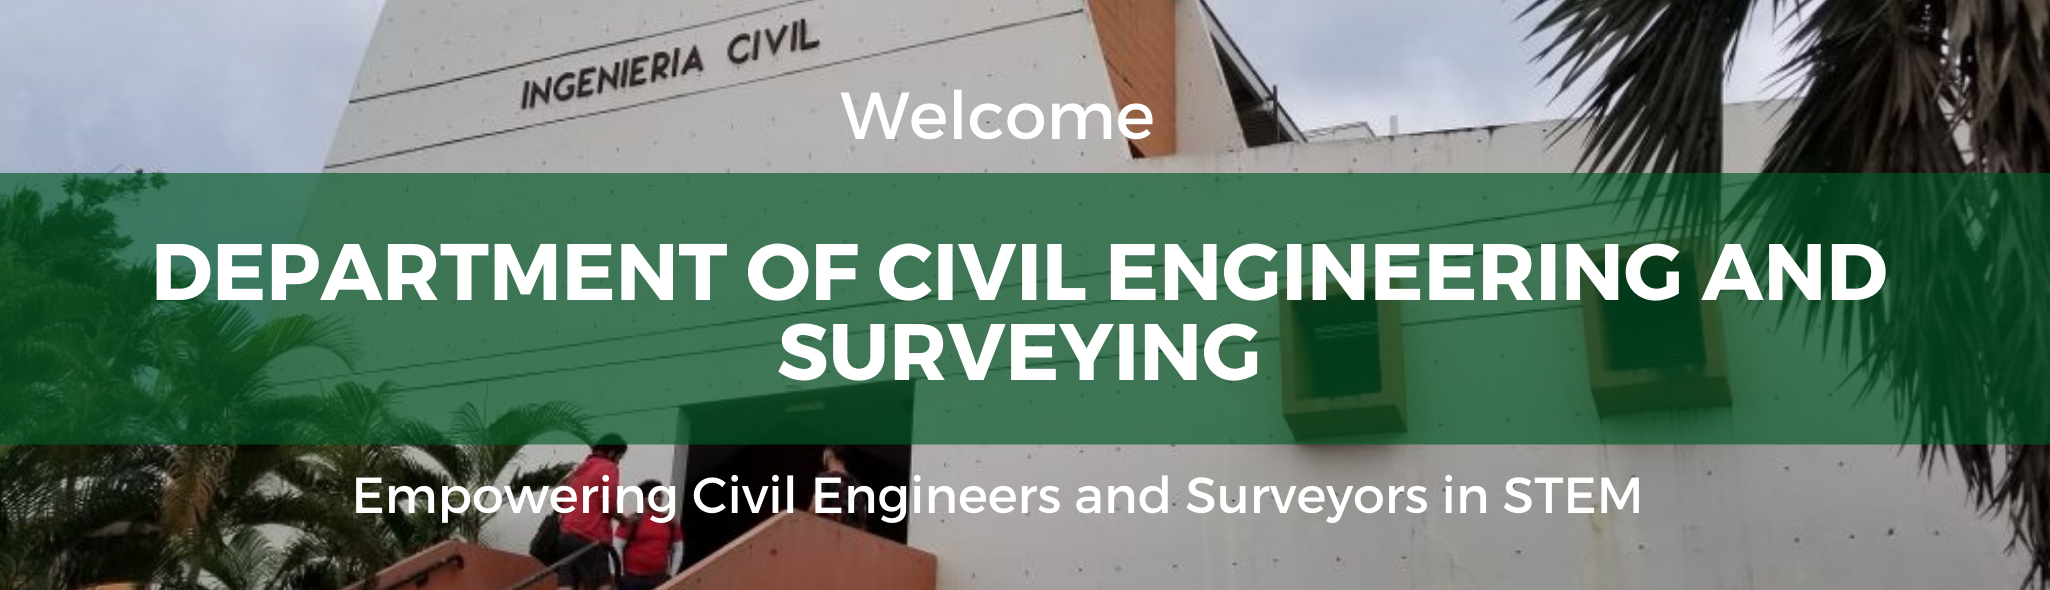 Department of Civil Engineering and Surveying Welcome